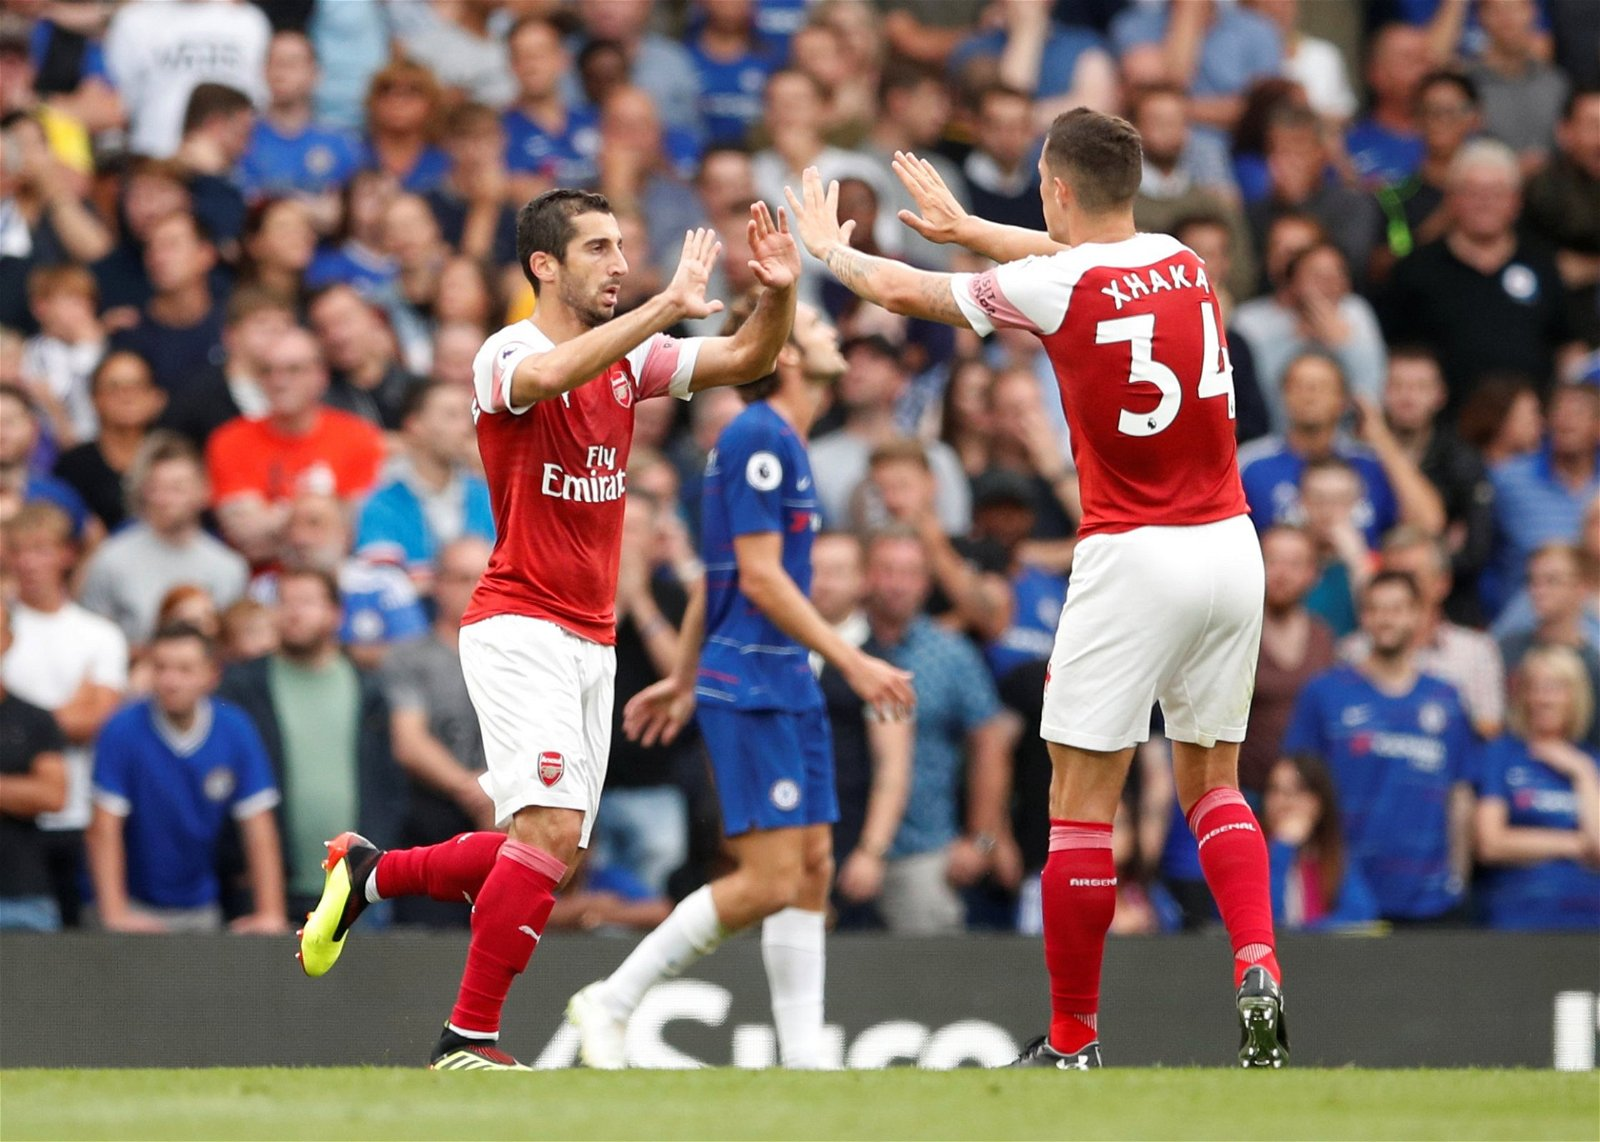 Henrikh Mkhitaryan celebrates scoring at Stamford Bridge